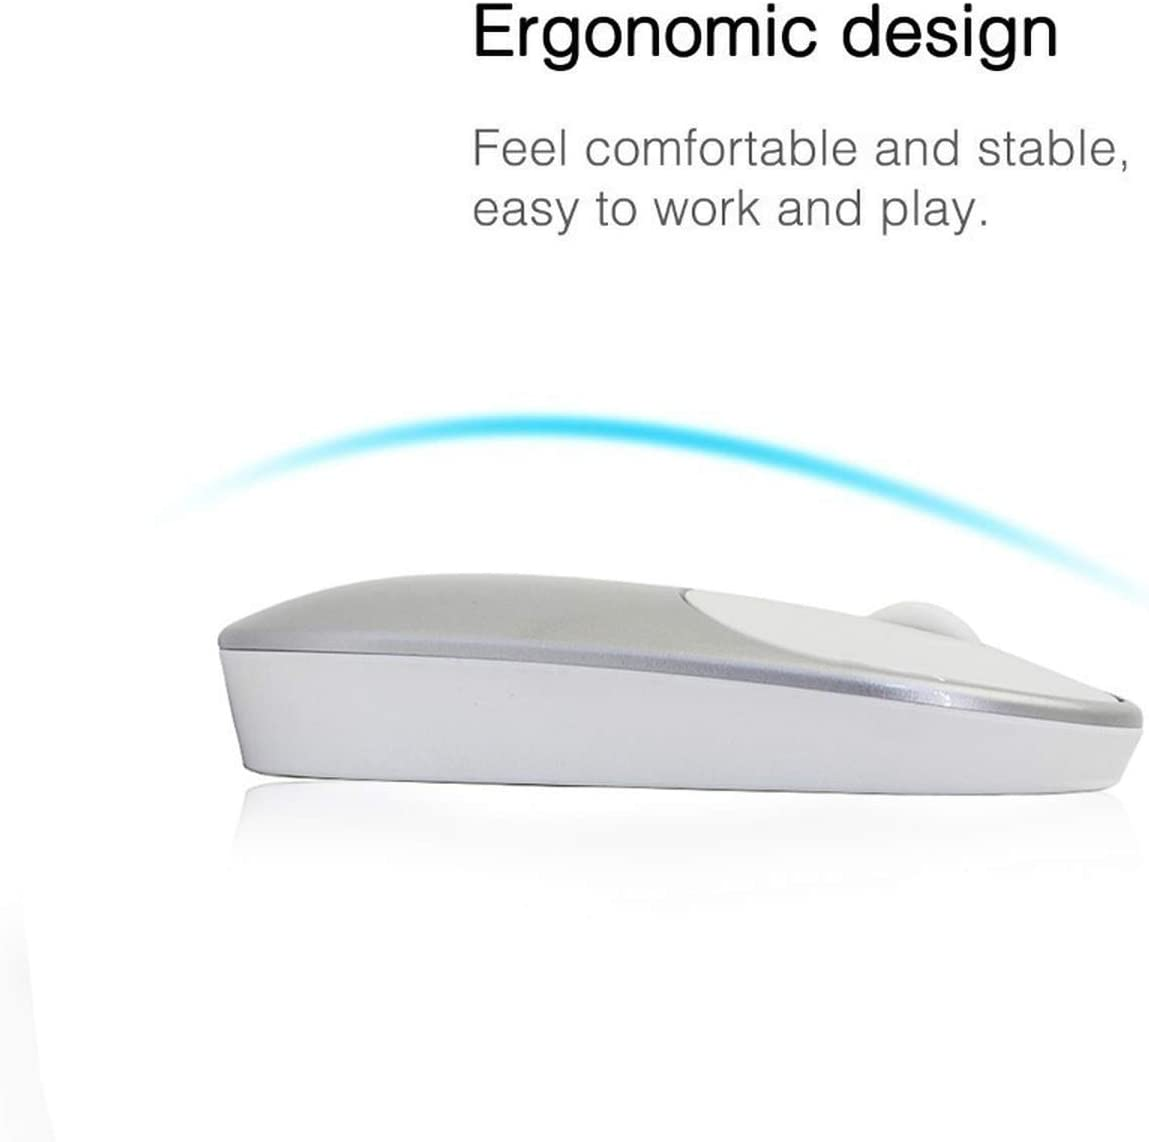 Mini Wireless 2.4G Silent Mouse Ultra-Thin Optical 1200DPI Ergonomic Mause Slim Office Computer Pc Portable Game Mice for,Silent Wireless